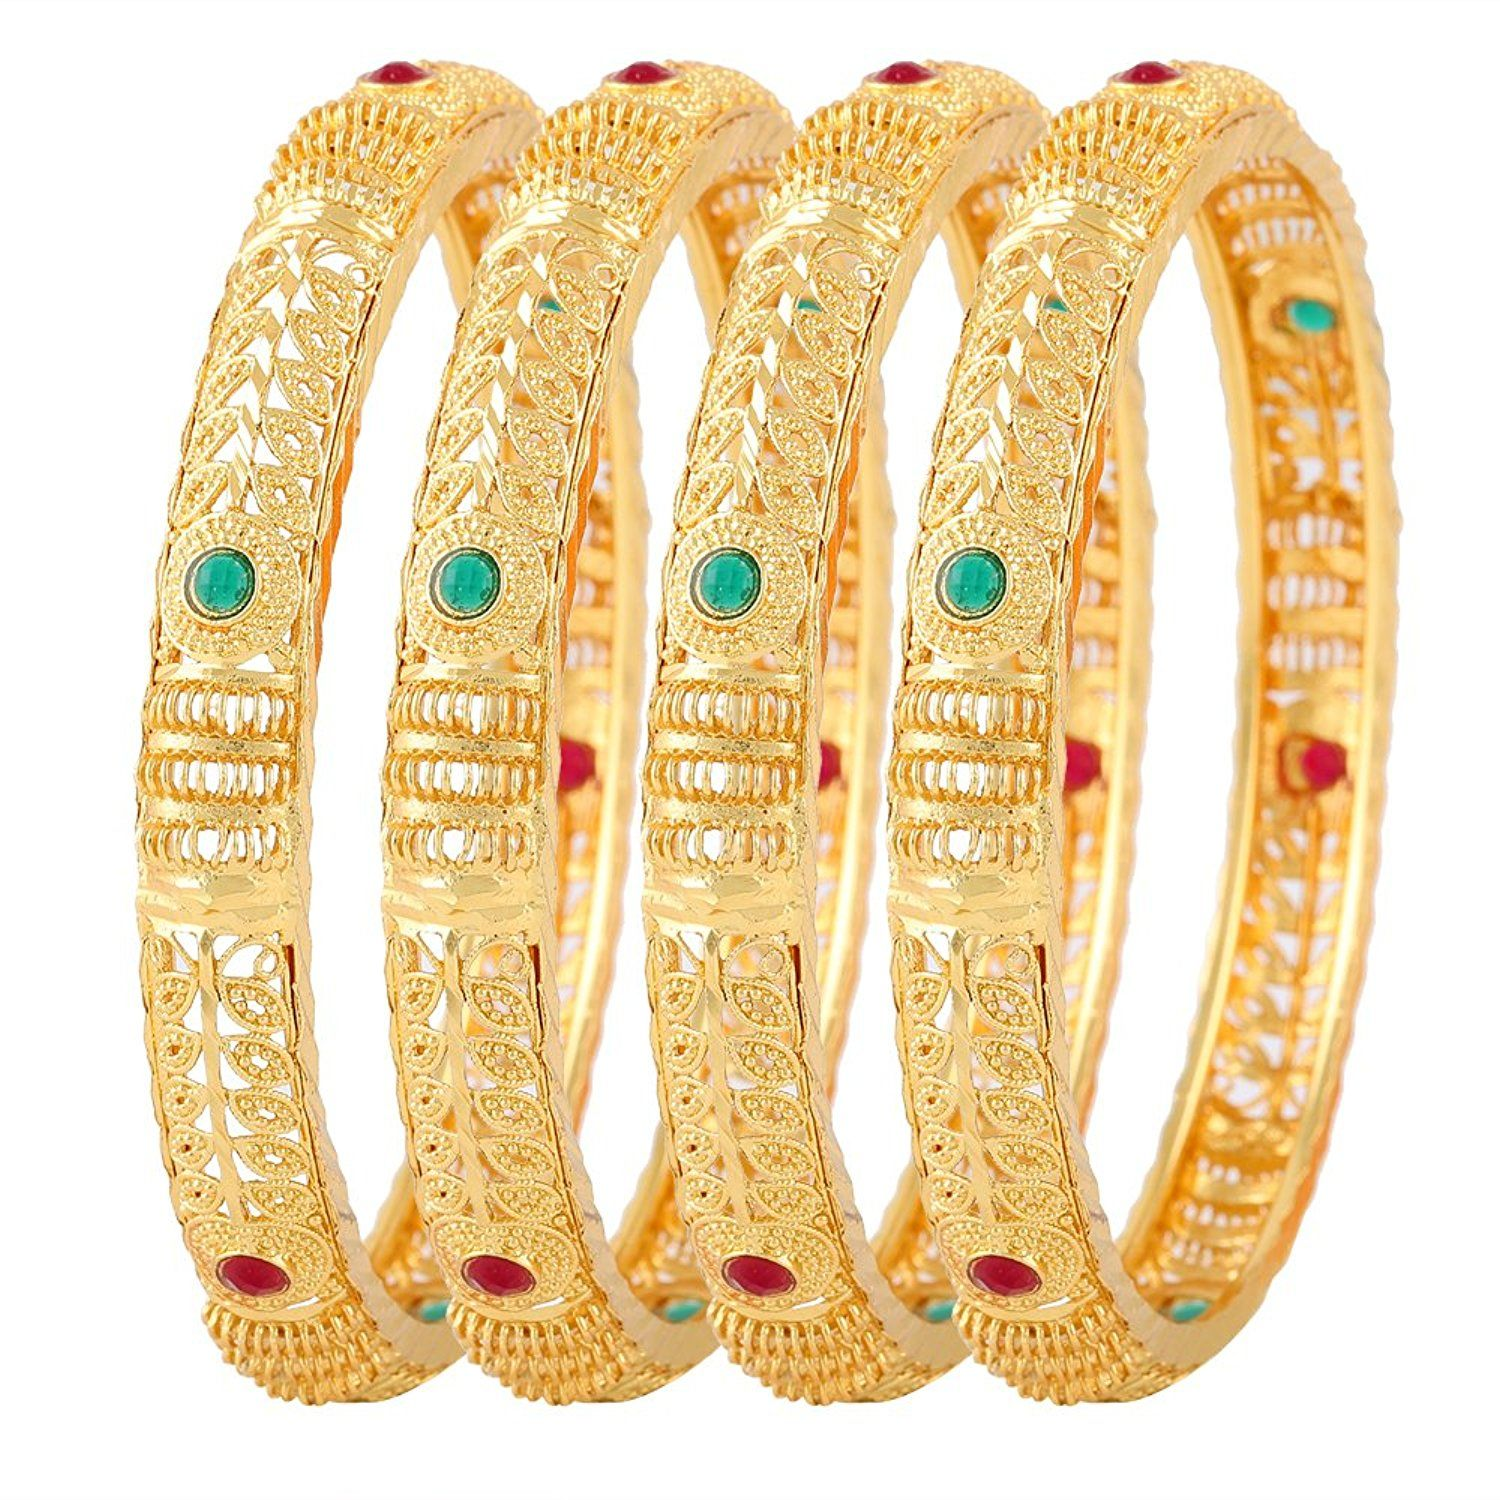 Jewellery itself has no value but the jewels which can make women